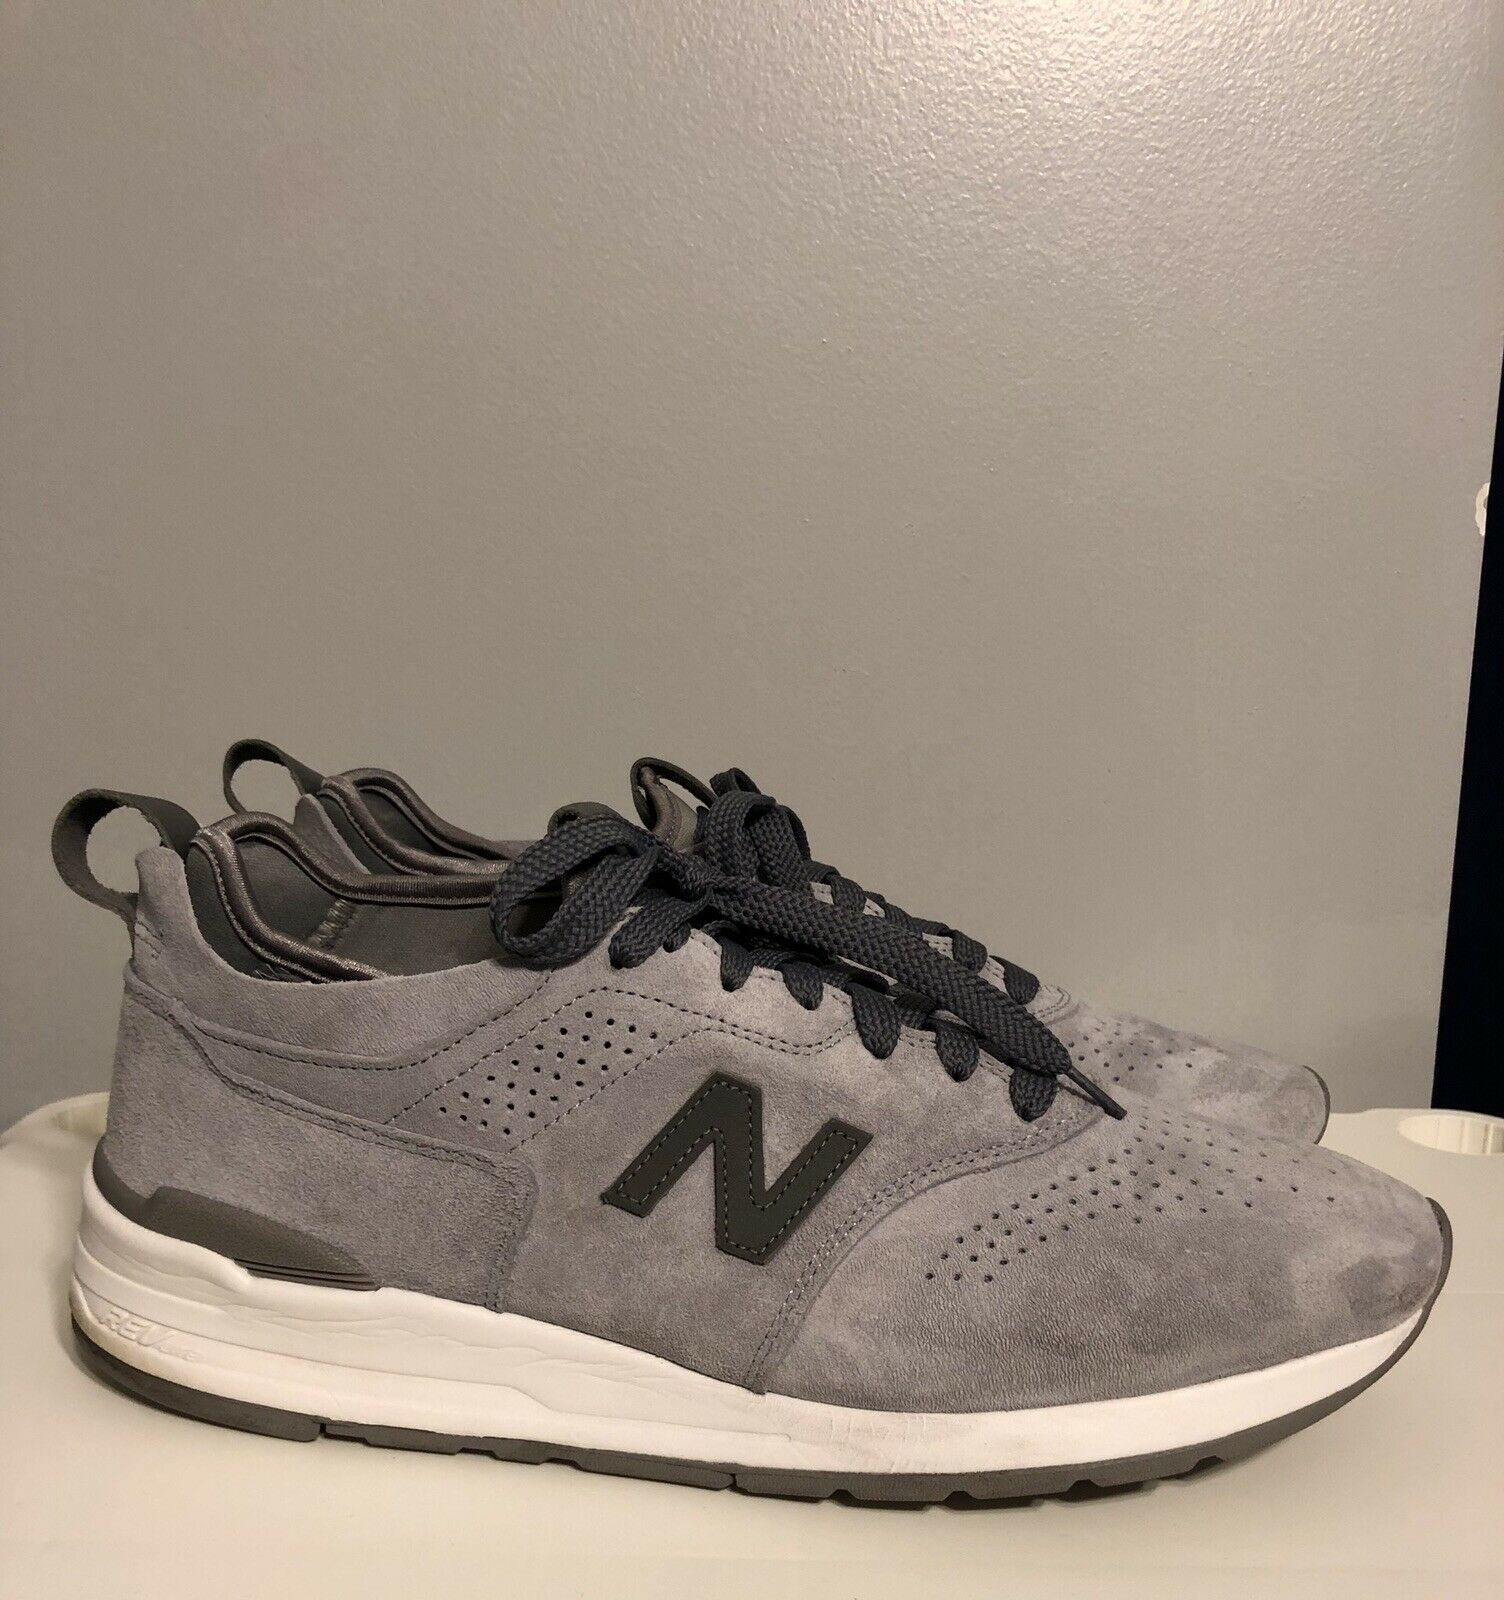 New Balance M997DGR2 Deconstructed Made in the USA Suede zapatos Talla 13 Rare 997